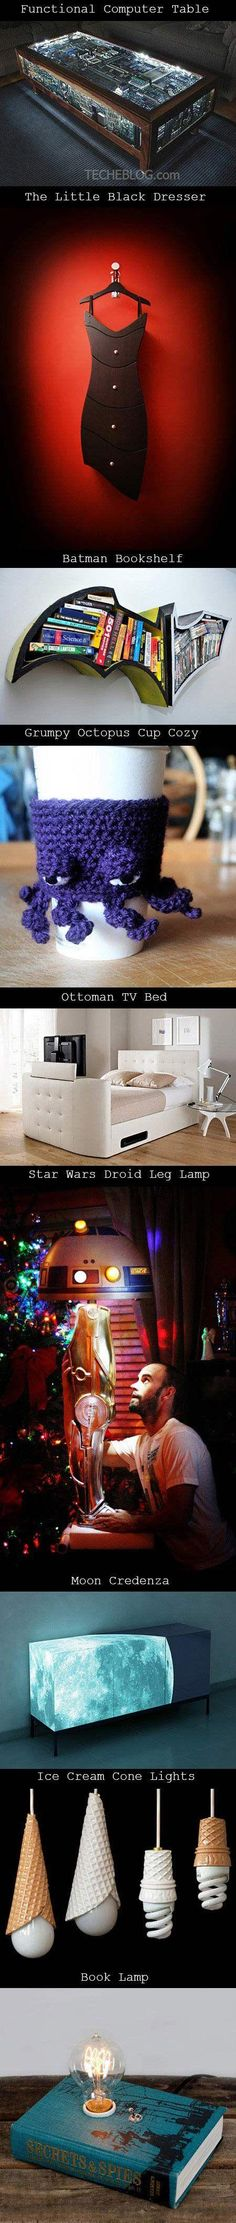 For the geek home…I WANT IT ALL!!!!